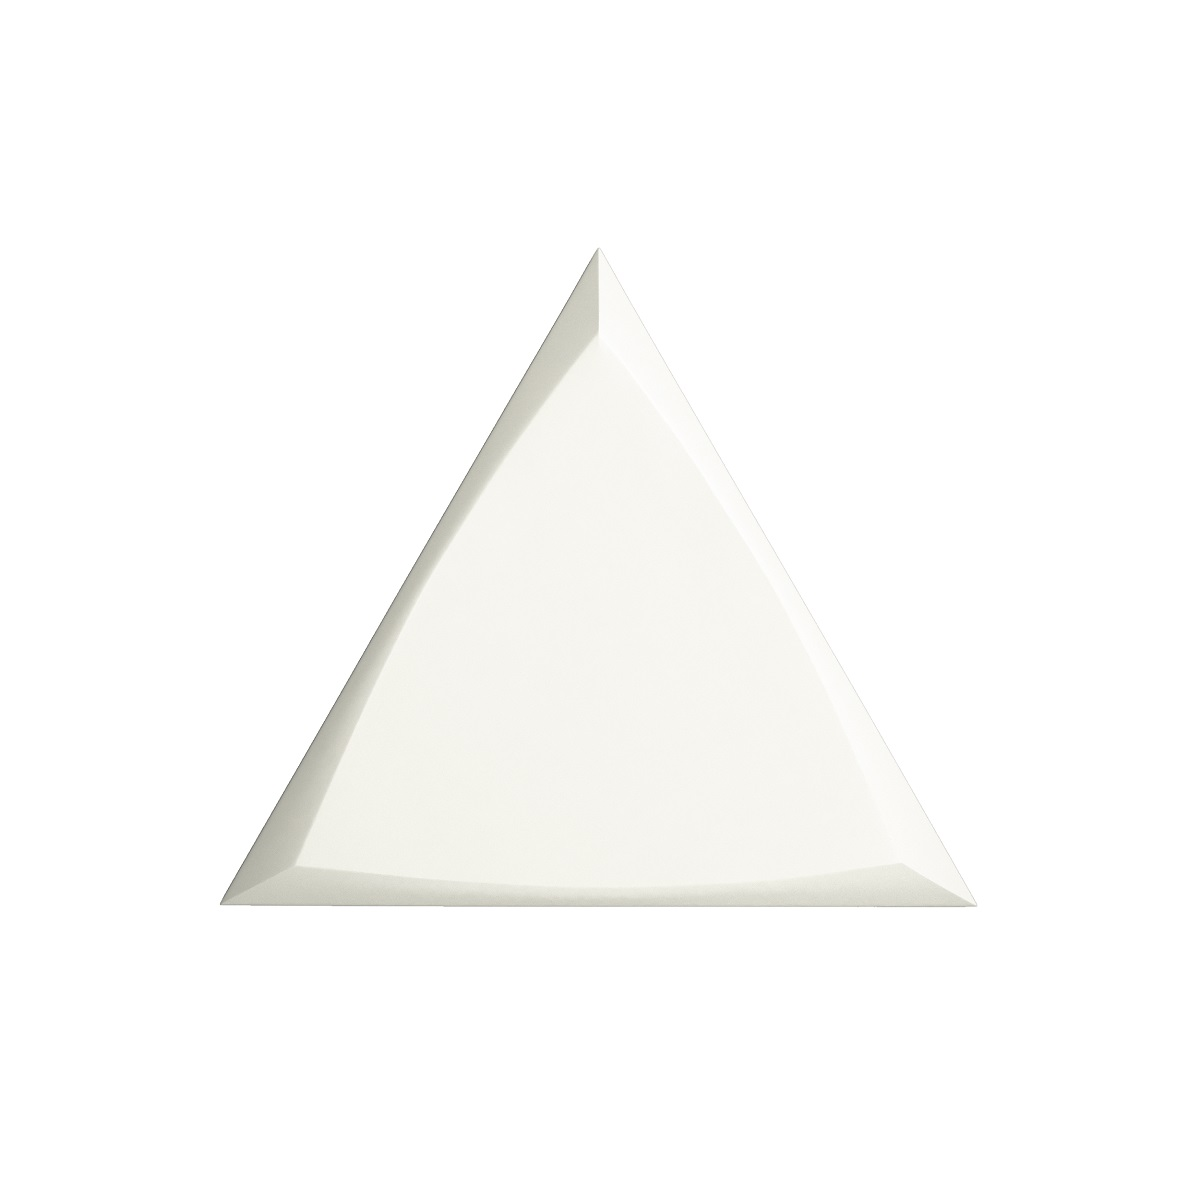 image/catalog/product_series_tiles/873/TRIANGULO_CONCAVO_BLANCO_MATE_copia_smaller_pixel.jpg